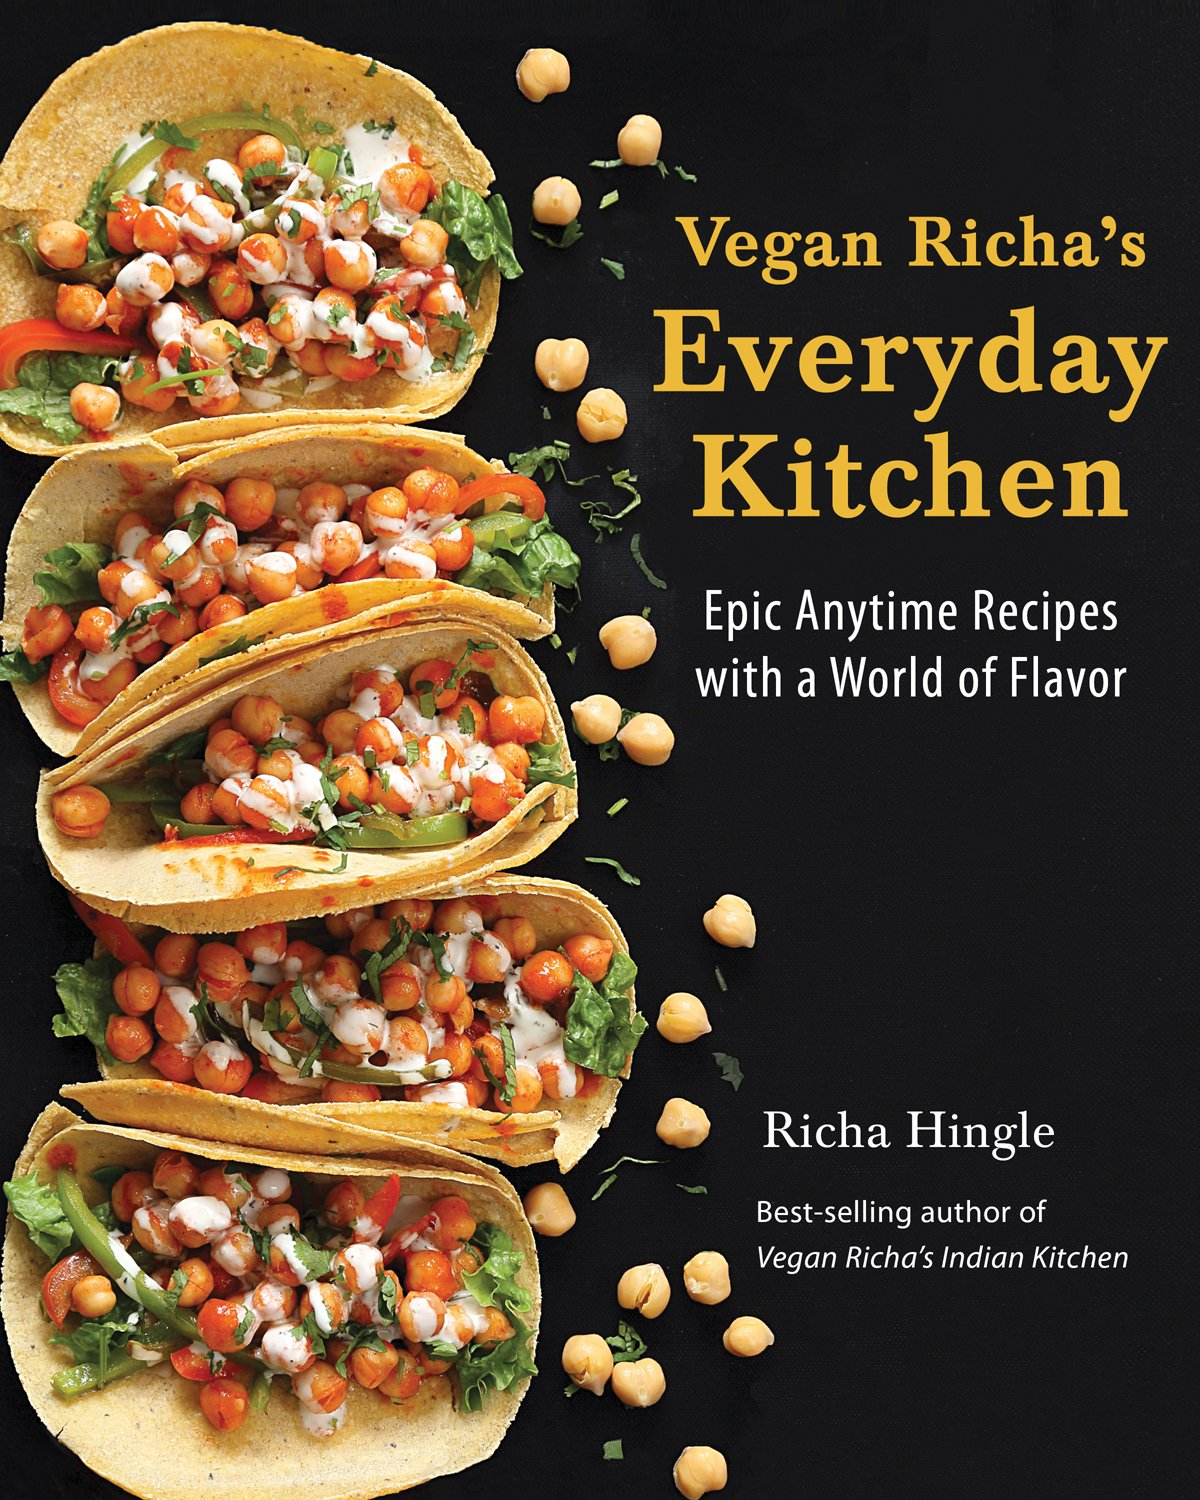 Vegan Richa's Everyday Kitchen! Available to Pre-order Everywhere where books are sold. Get Your Pre-order Bonus Today